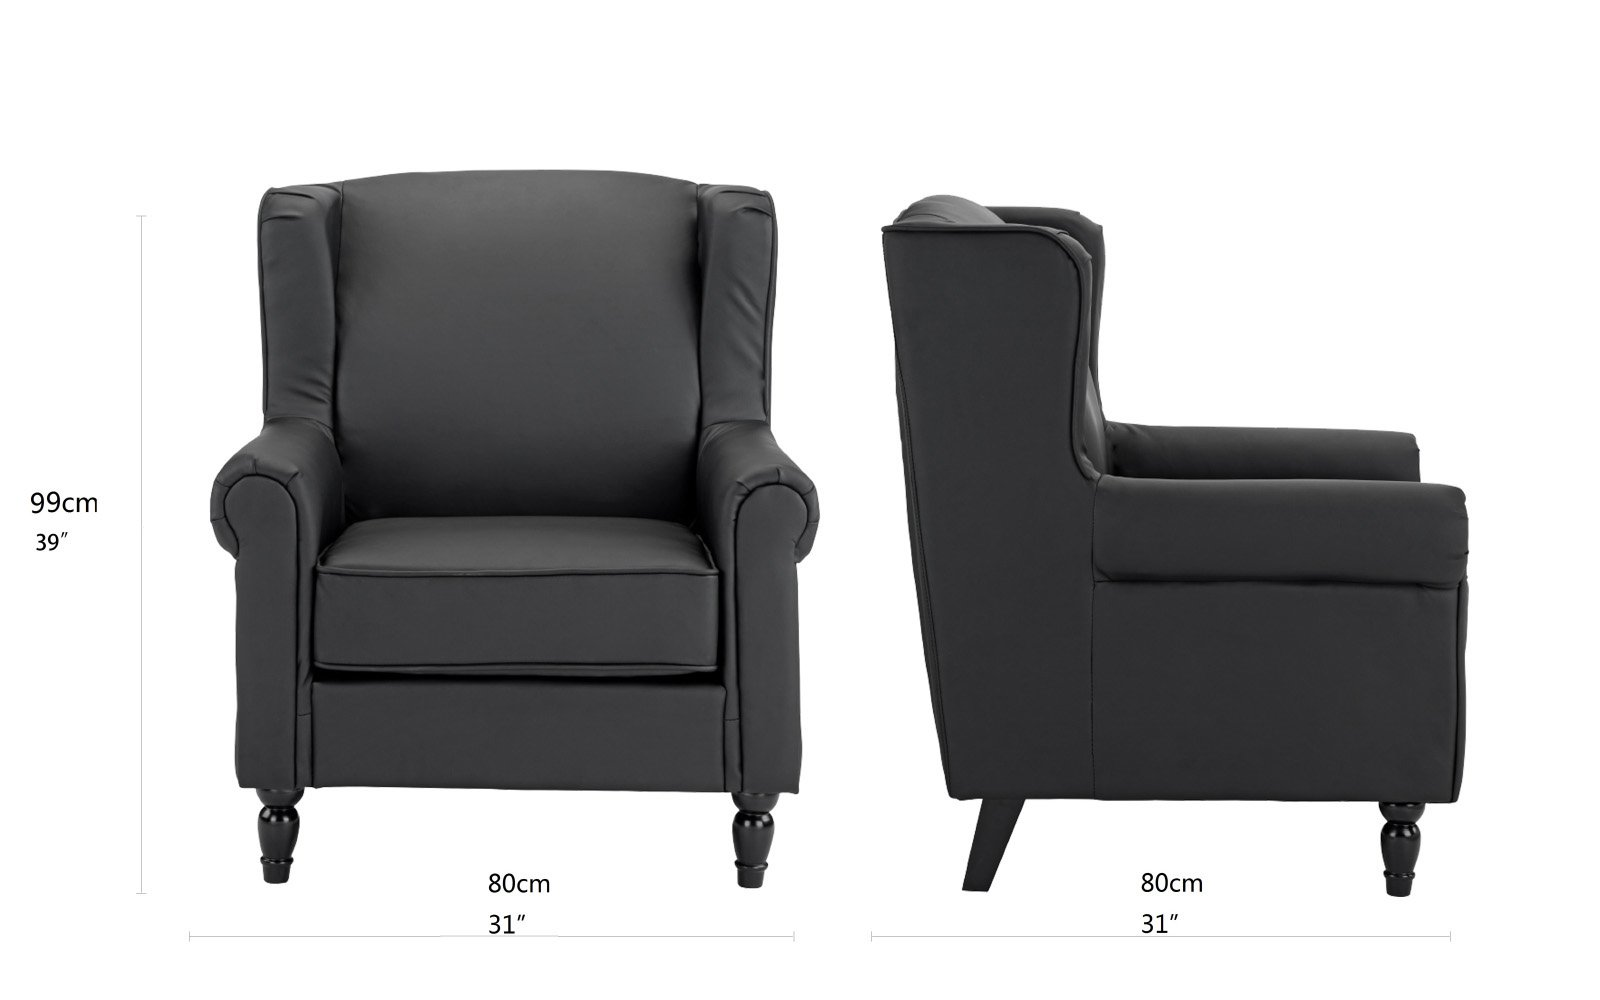 Black Faux Leather Chair: Classic Scroll Arm Faux Leather Accent Chair, Living Room